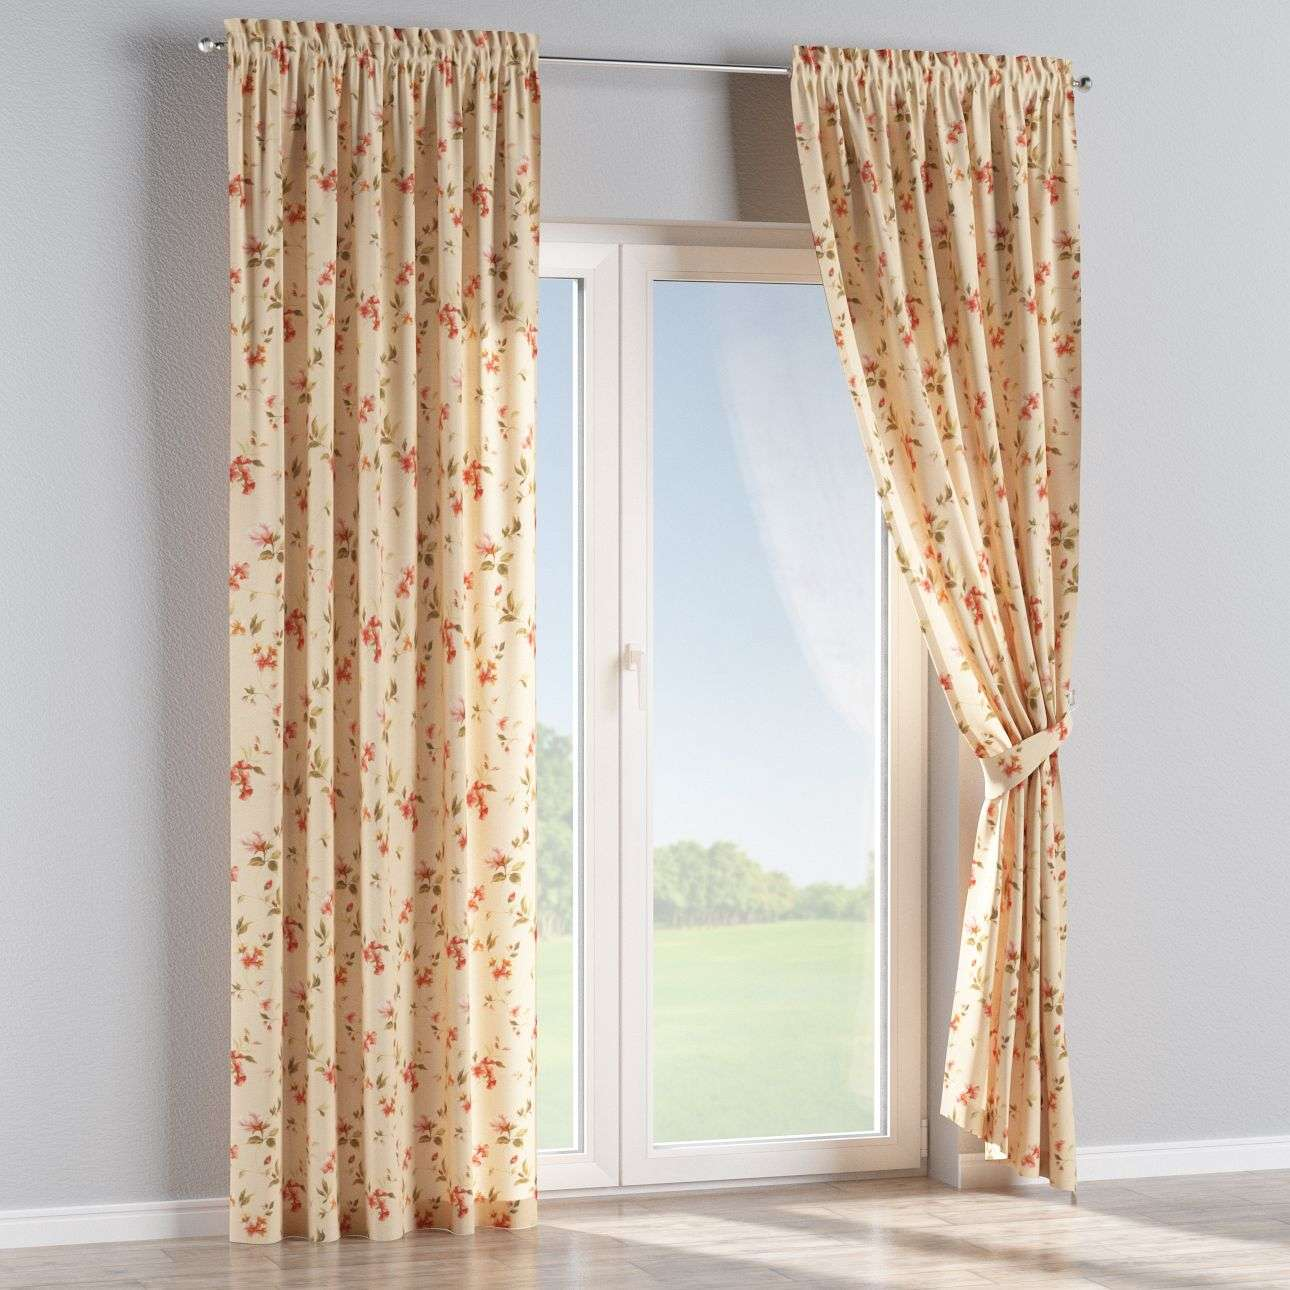 Slot and frill curtains 130 × 260 cm (51 × 102 inch) in collection Londres, fabric: 124-05